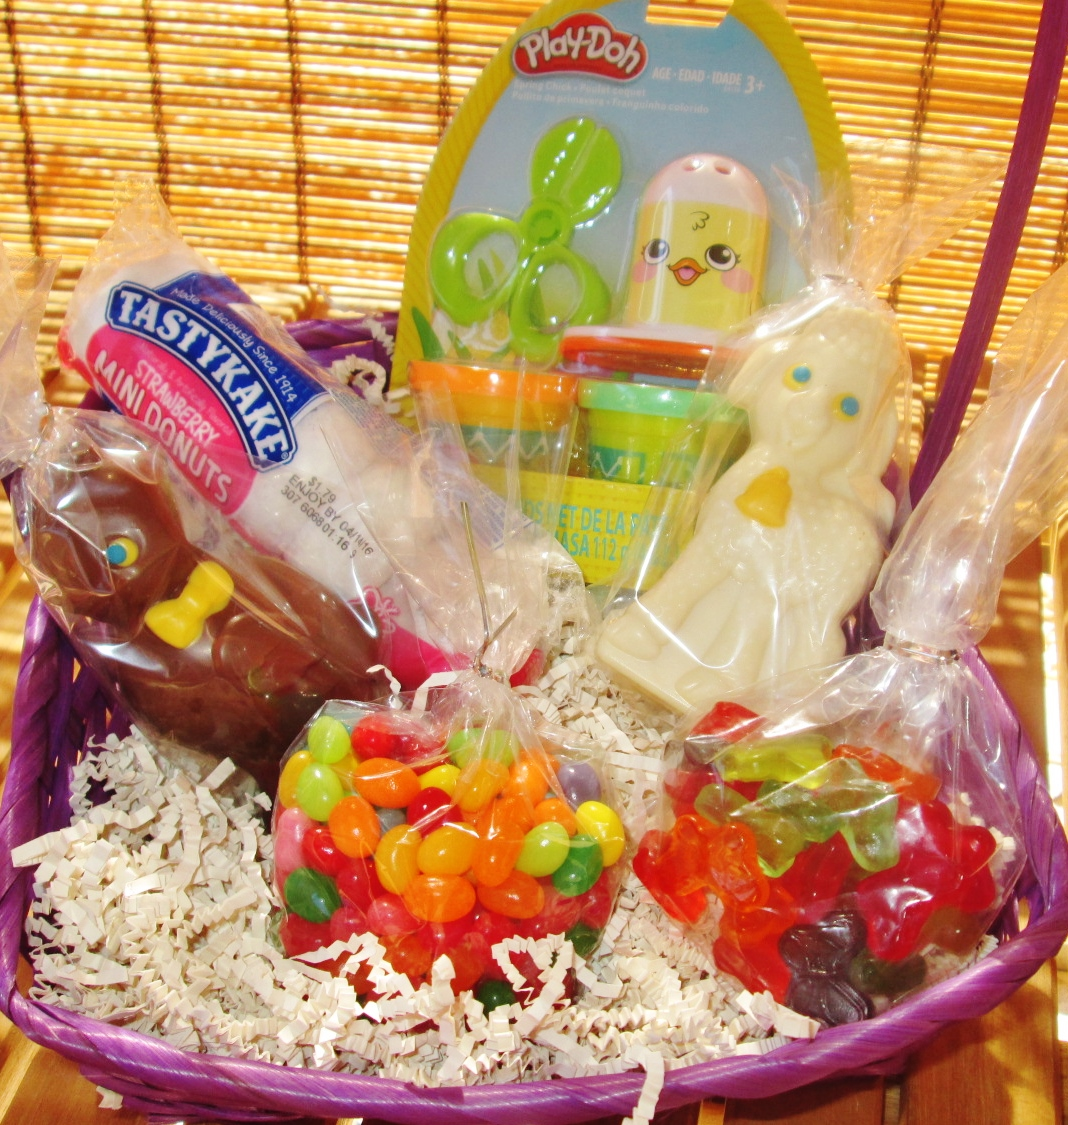 The traveling sisterhood tastykakes a delicious springtime tastykakes mini donuts are the perfect addition to my childrens easter baskets you can find them at circle k family dollar dollar general frys negle Images